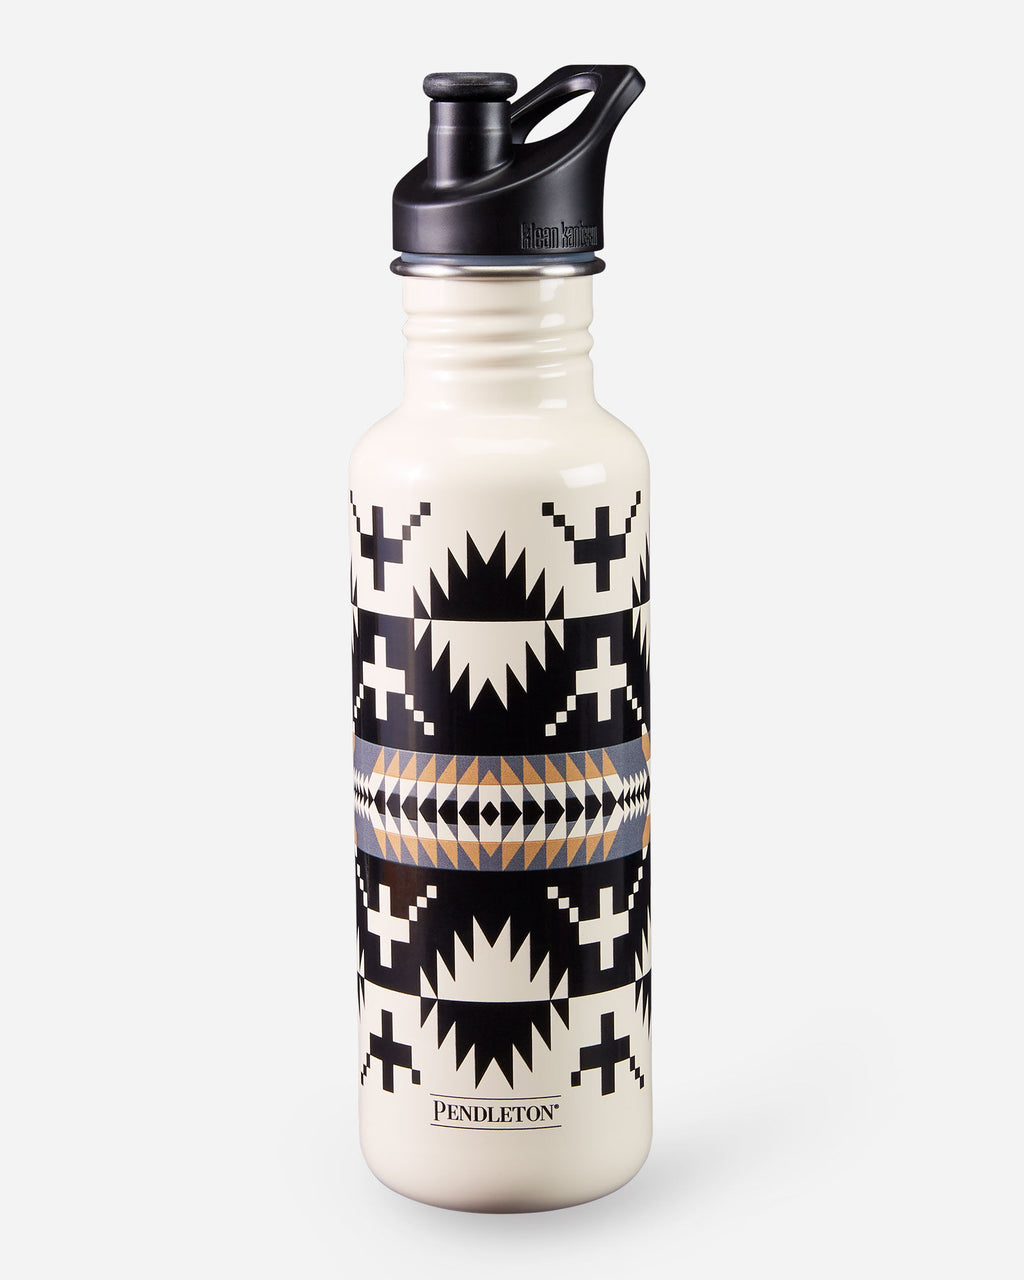 Pendleton Spider Rock Stainless Steel Water Bottle